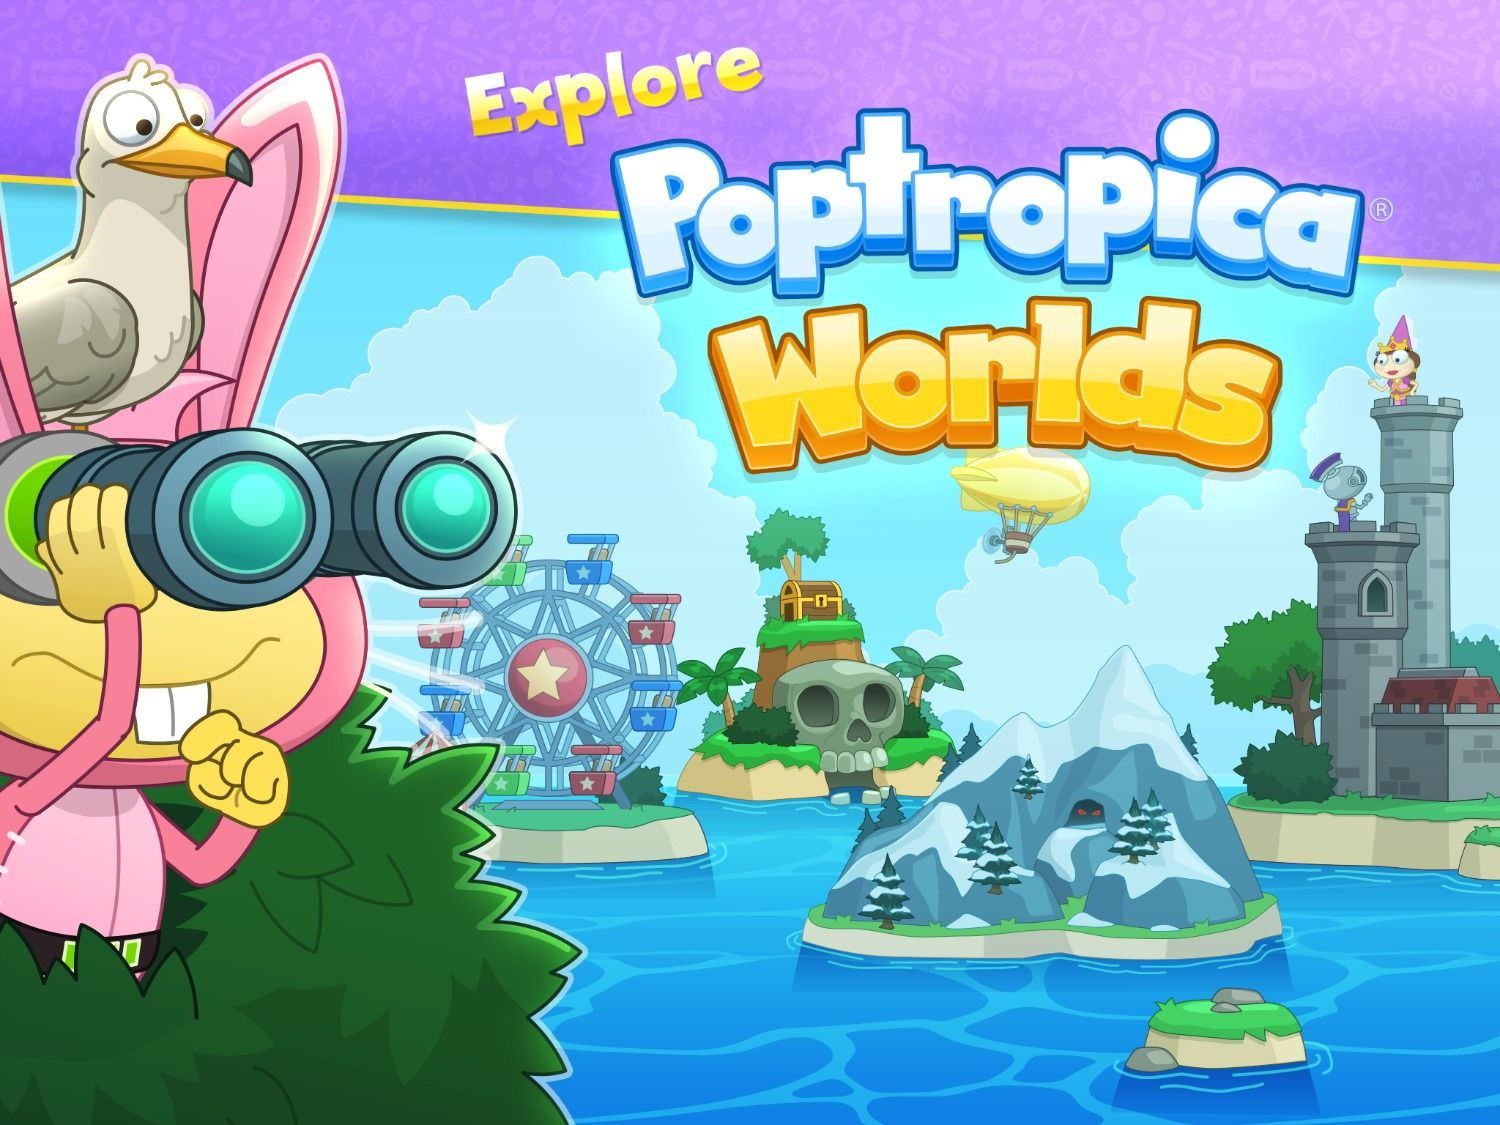 What Does Poptropica Worlds Have In Store For You Bizarre Creatures Cavernous Adventures Big Rewards Find Out Play Now On Mobile Games Apps Fan Art World